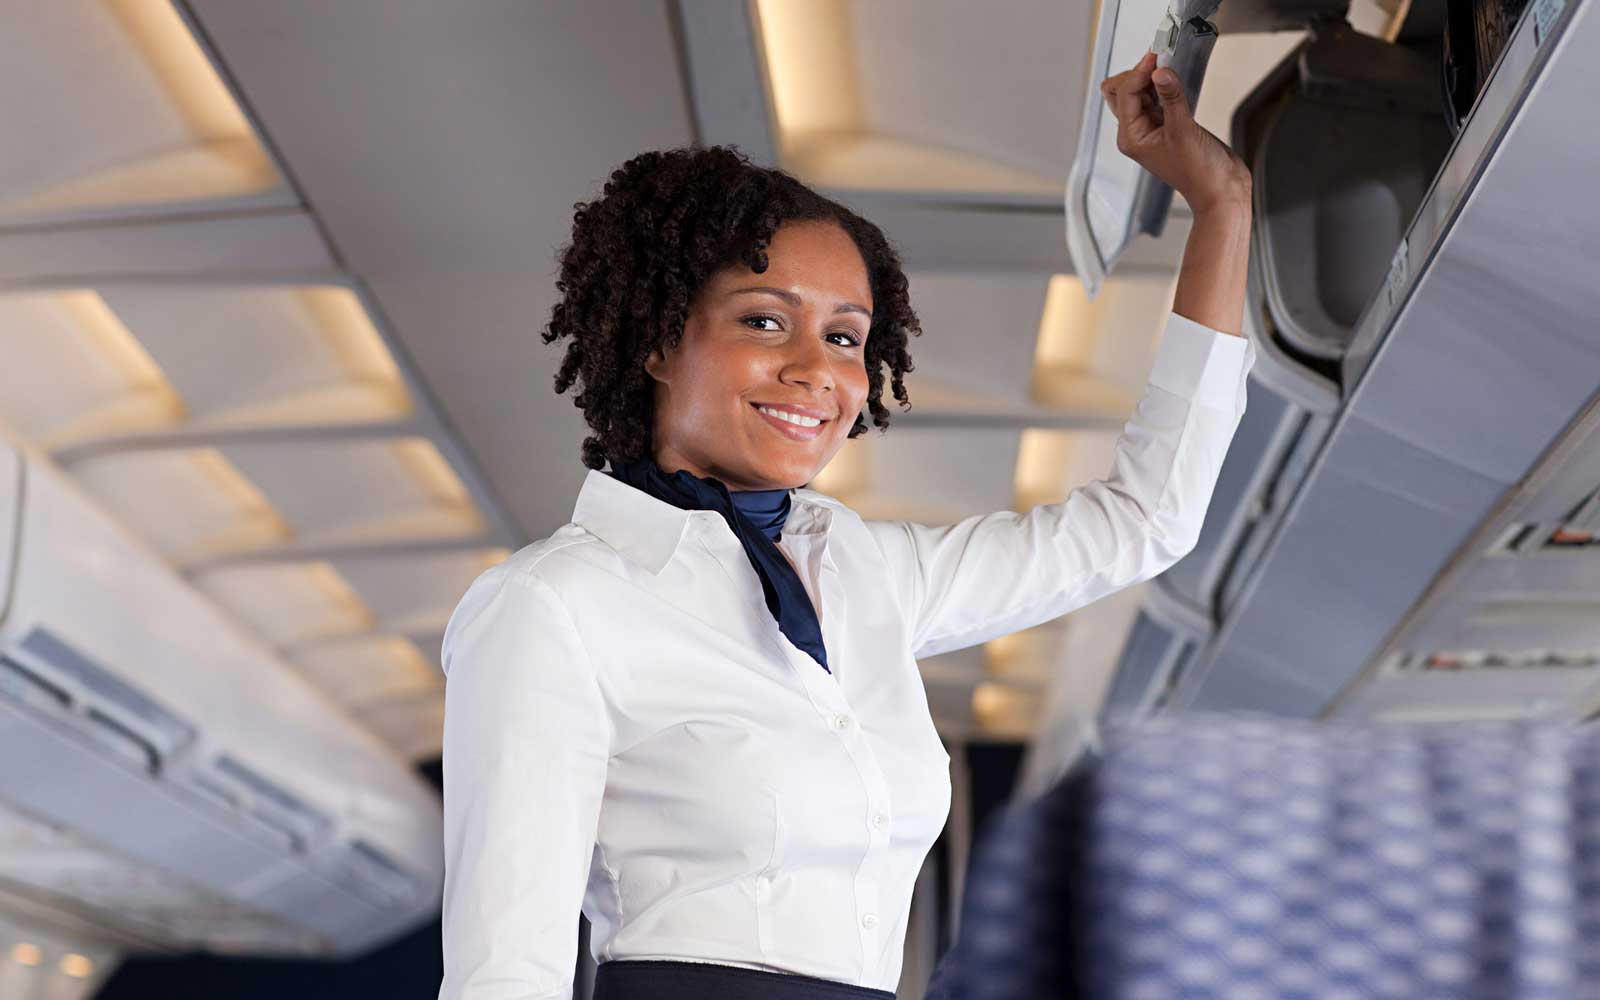 Flight Attendant on an airplane